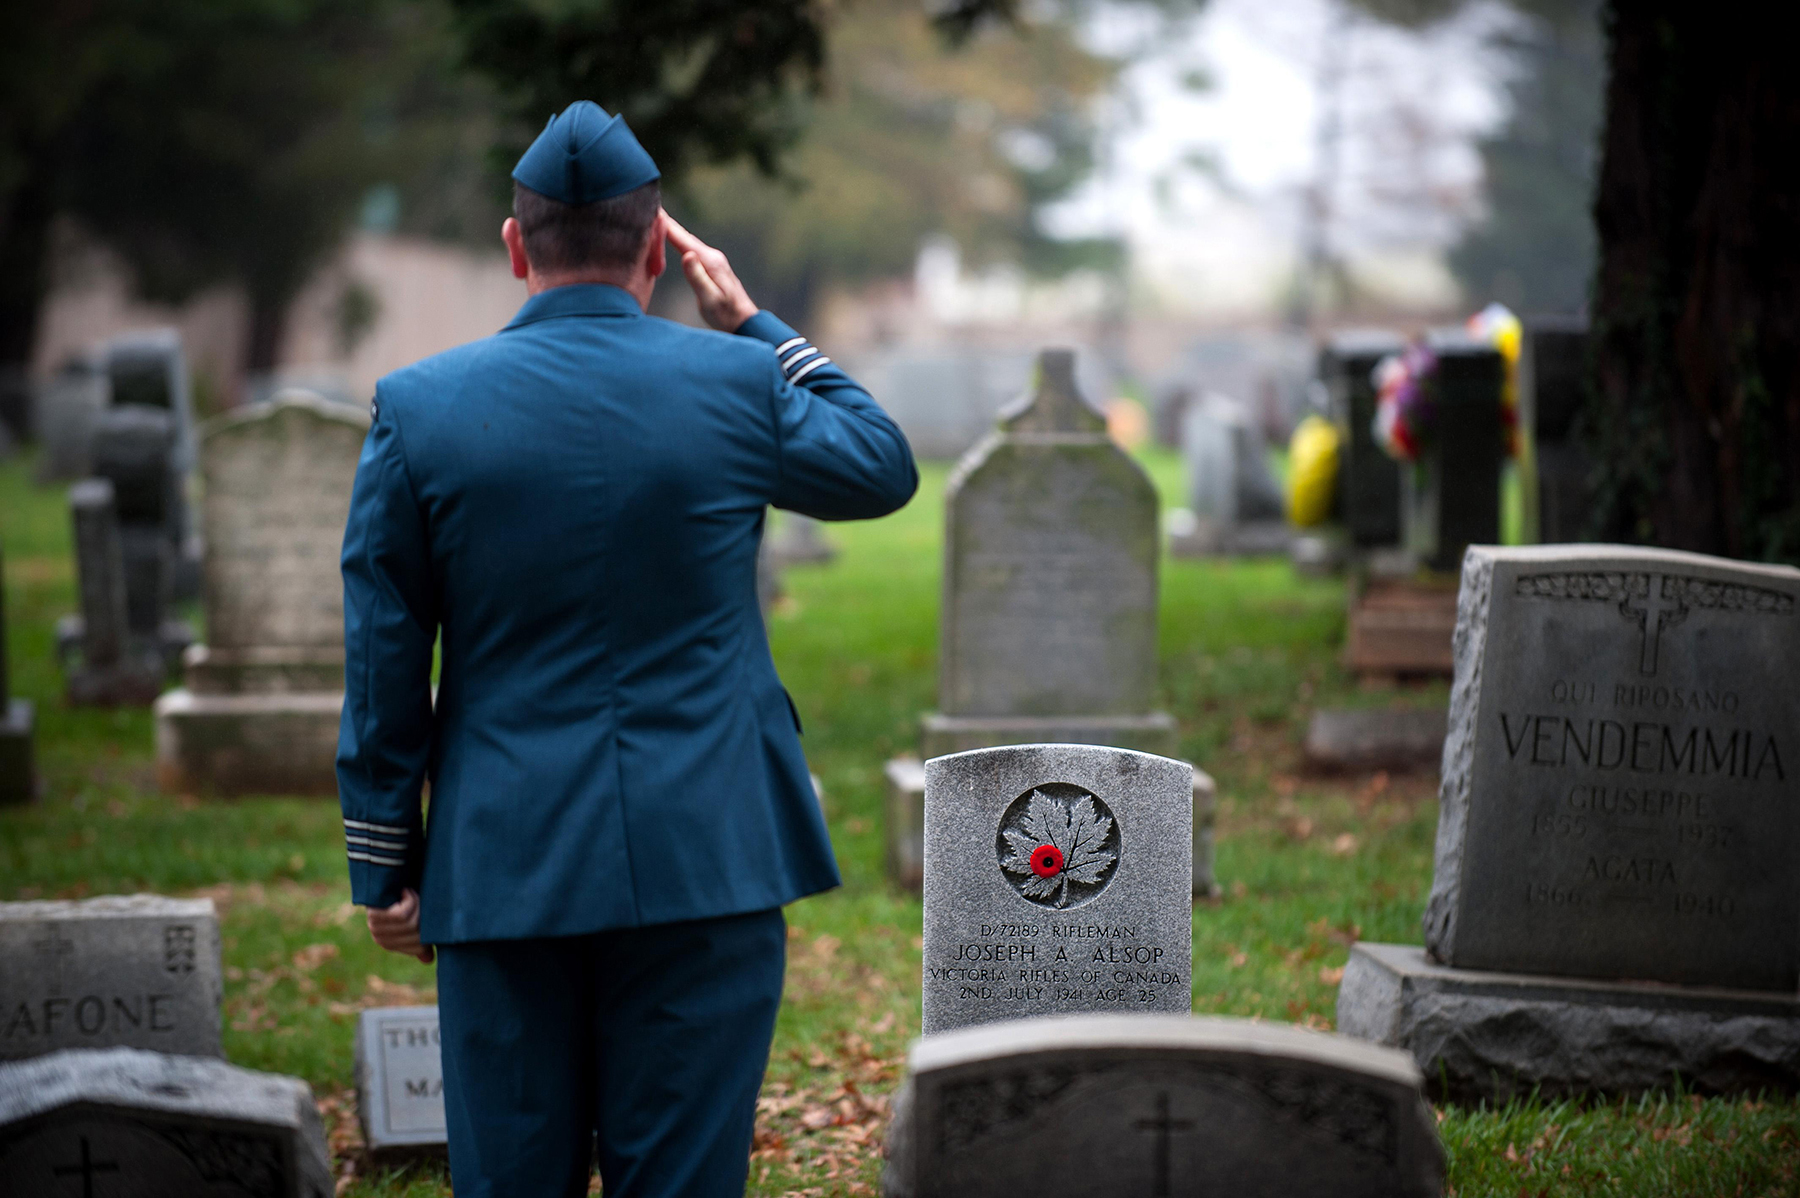 During Remembrance Week 2015, Lieutenant-Colonel Dave Devenney, Canadian Defence Liaison Staff (Washington), pays his respects to Rifleman Joseph A. Alsop, a member of the Victoria Rifles of Canada, who died on July 2, 1941, and to other Canadian military personnel interred in Arlington National Cemetery in Arlington, Virginia, U.S. PHOTO: Keegan Bursaw